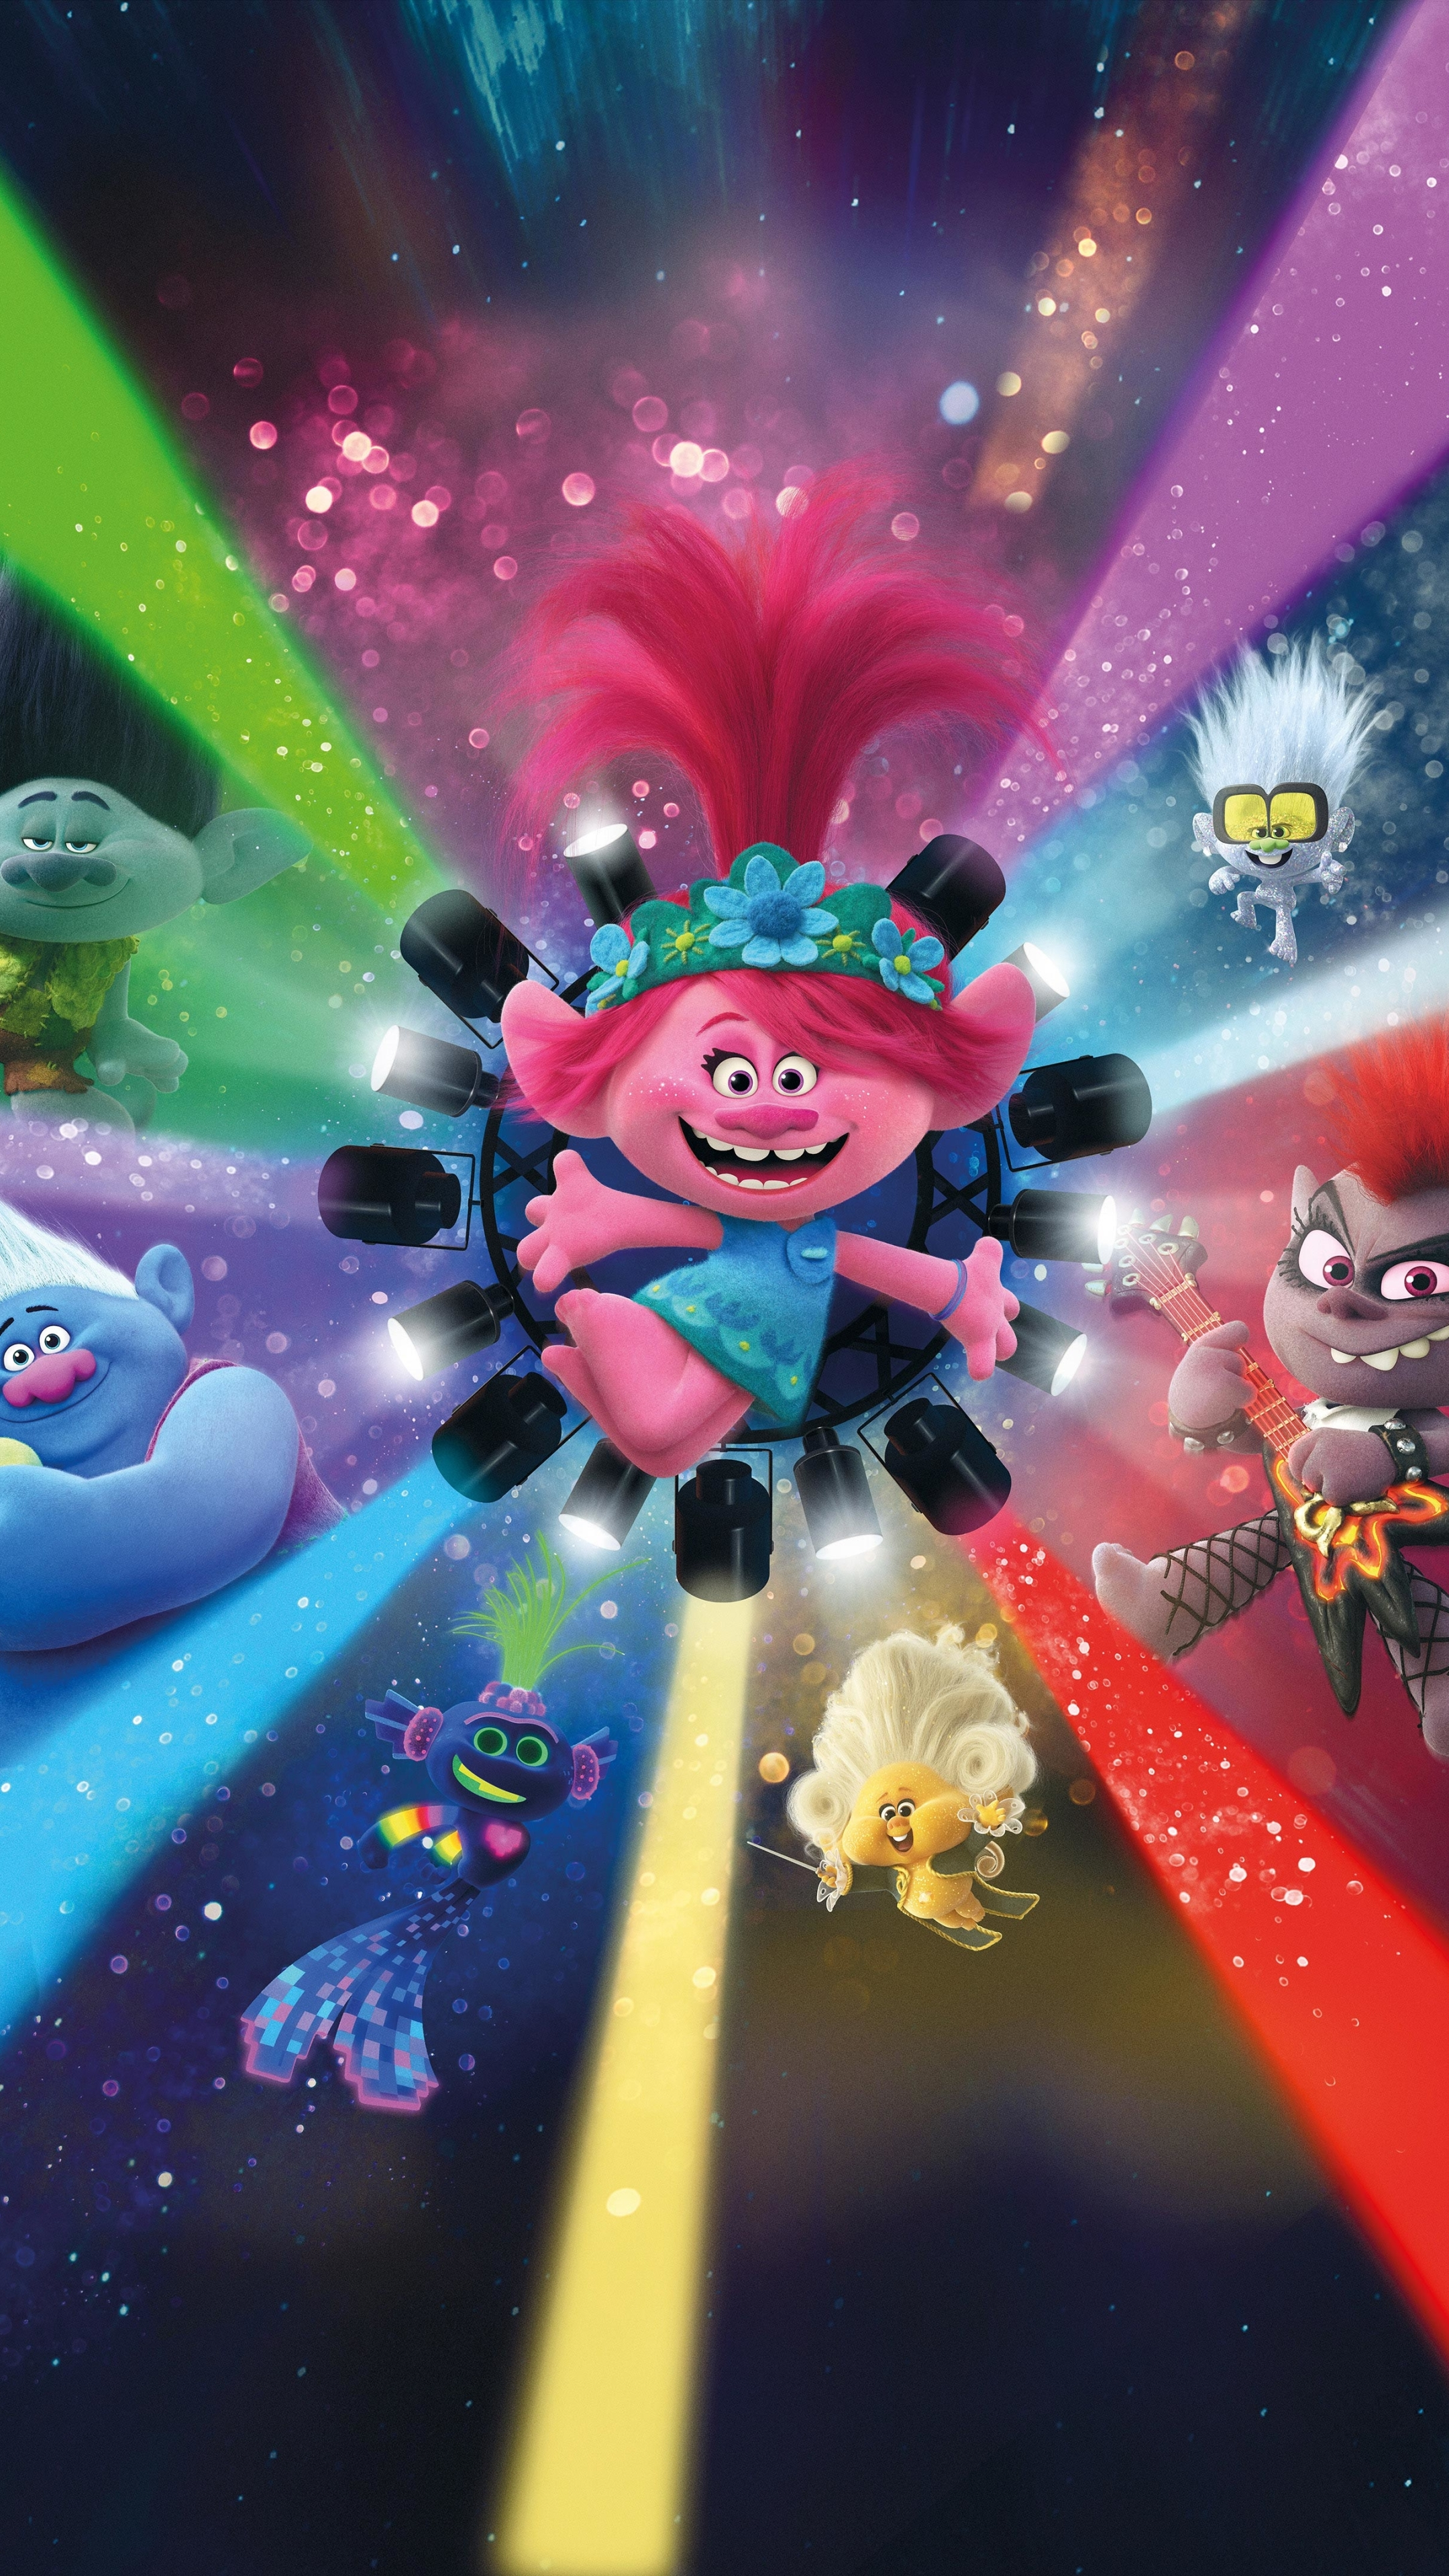 2160x3840 Trolls World Tour 8k Characters Sony Xperia X Xz Z5 Premium Wallpaper Hd Movies 4k Wallpapers Images Photos And Background